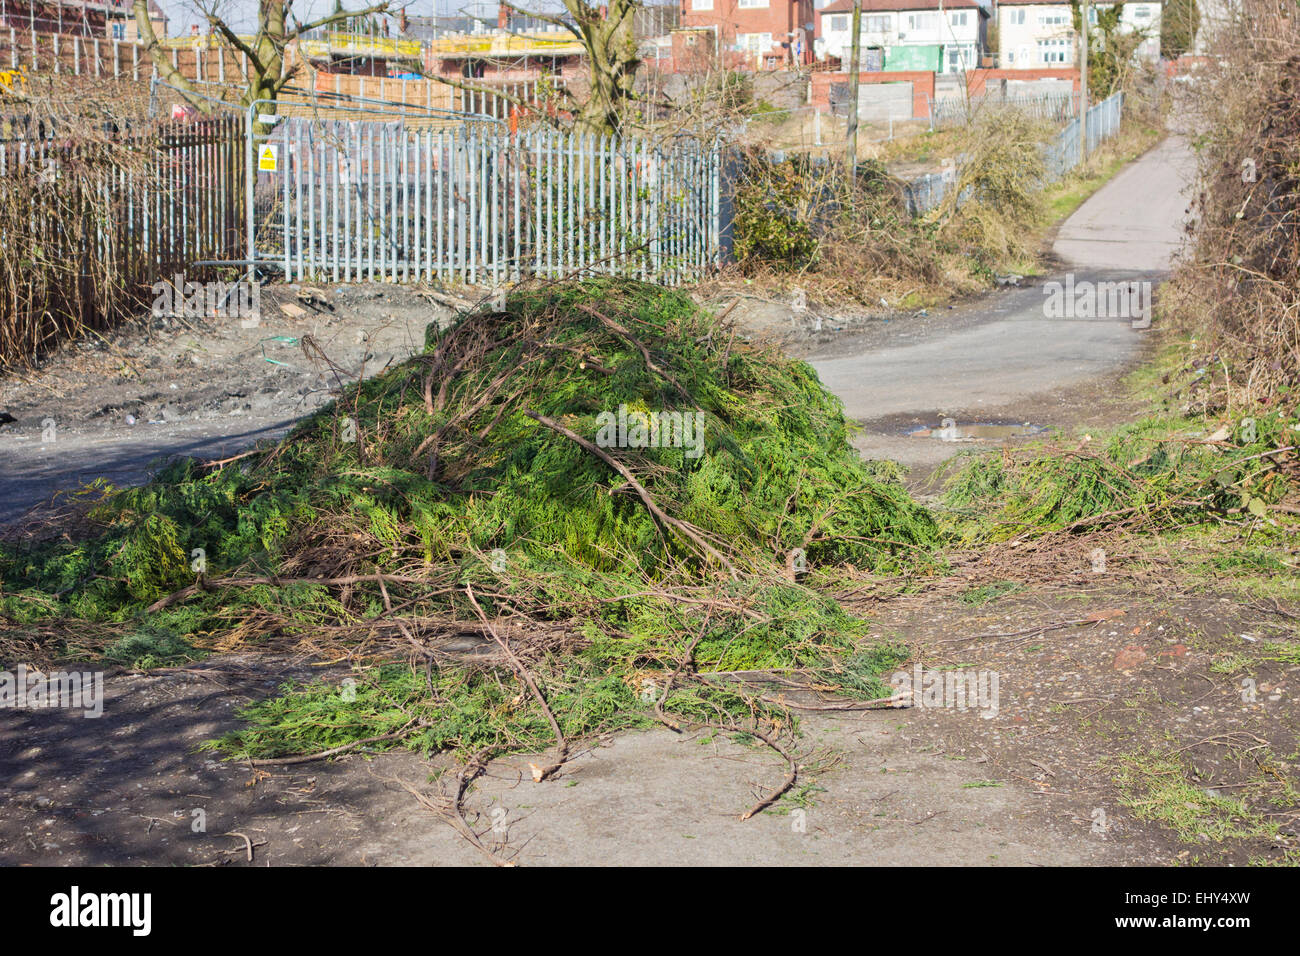 Dumped Fly Tipped Conifer Branches in a Minor Lane, Brierley Hill, West Midlands, England, UK - Stock Image